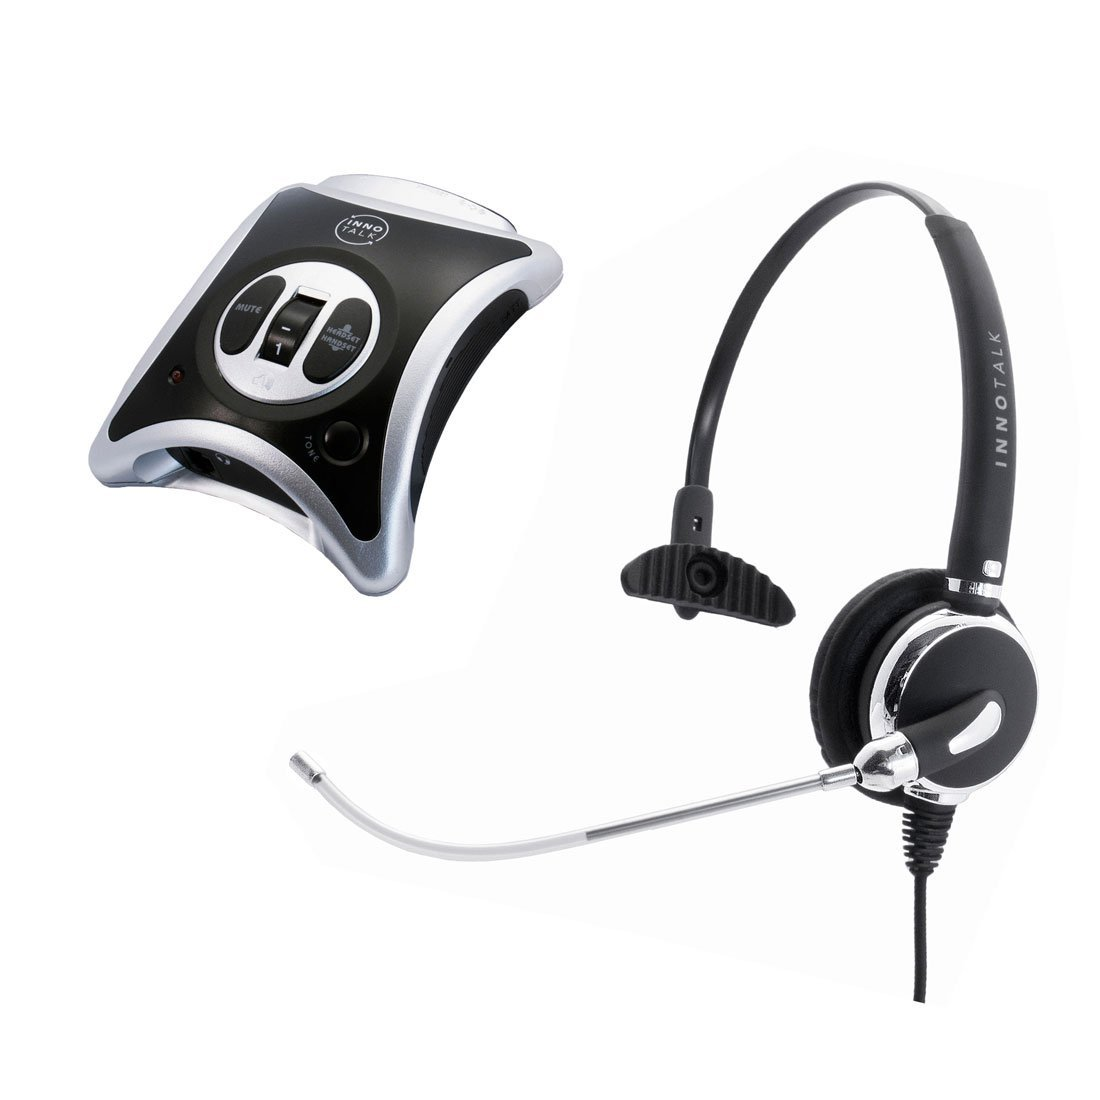 InnoTalk Headset for Avaya Lucent AT&T MLS-34, MLS-34D, MLS-6 Replaceable Voice Tube Microphone Quick Disconnect Call Center Phone Headset with Amplifier